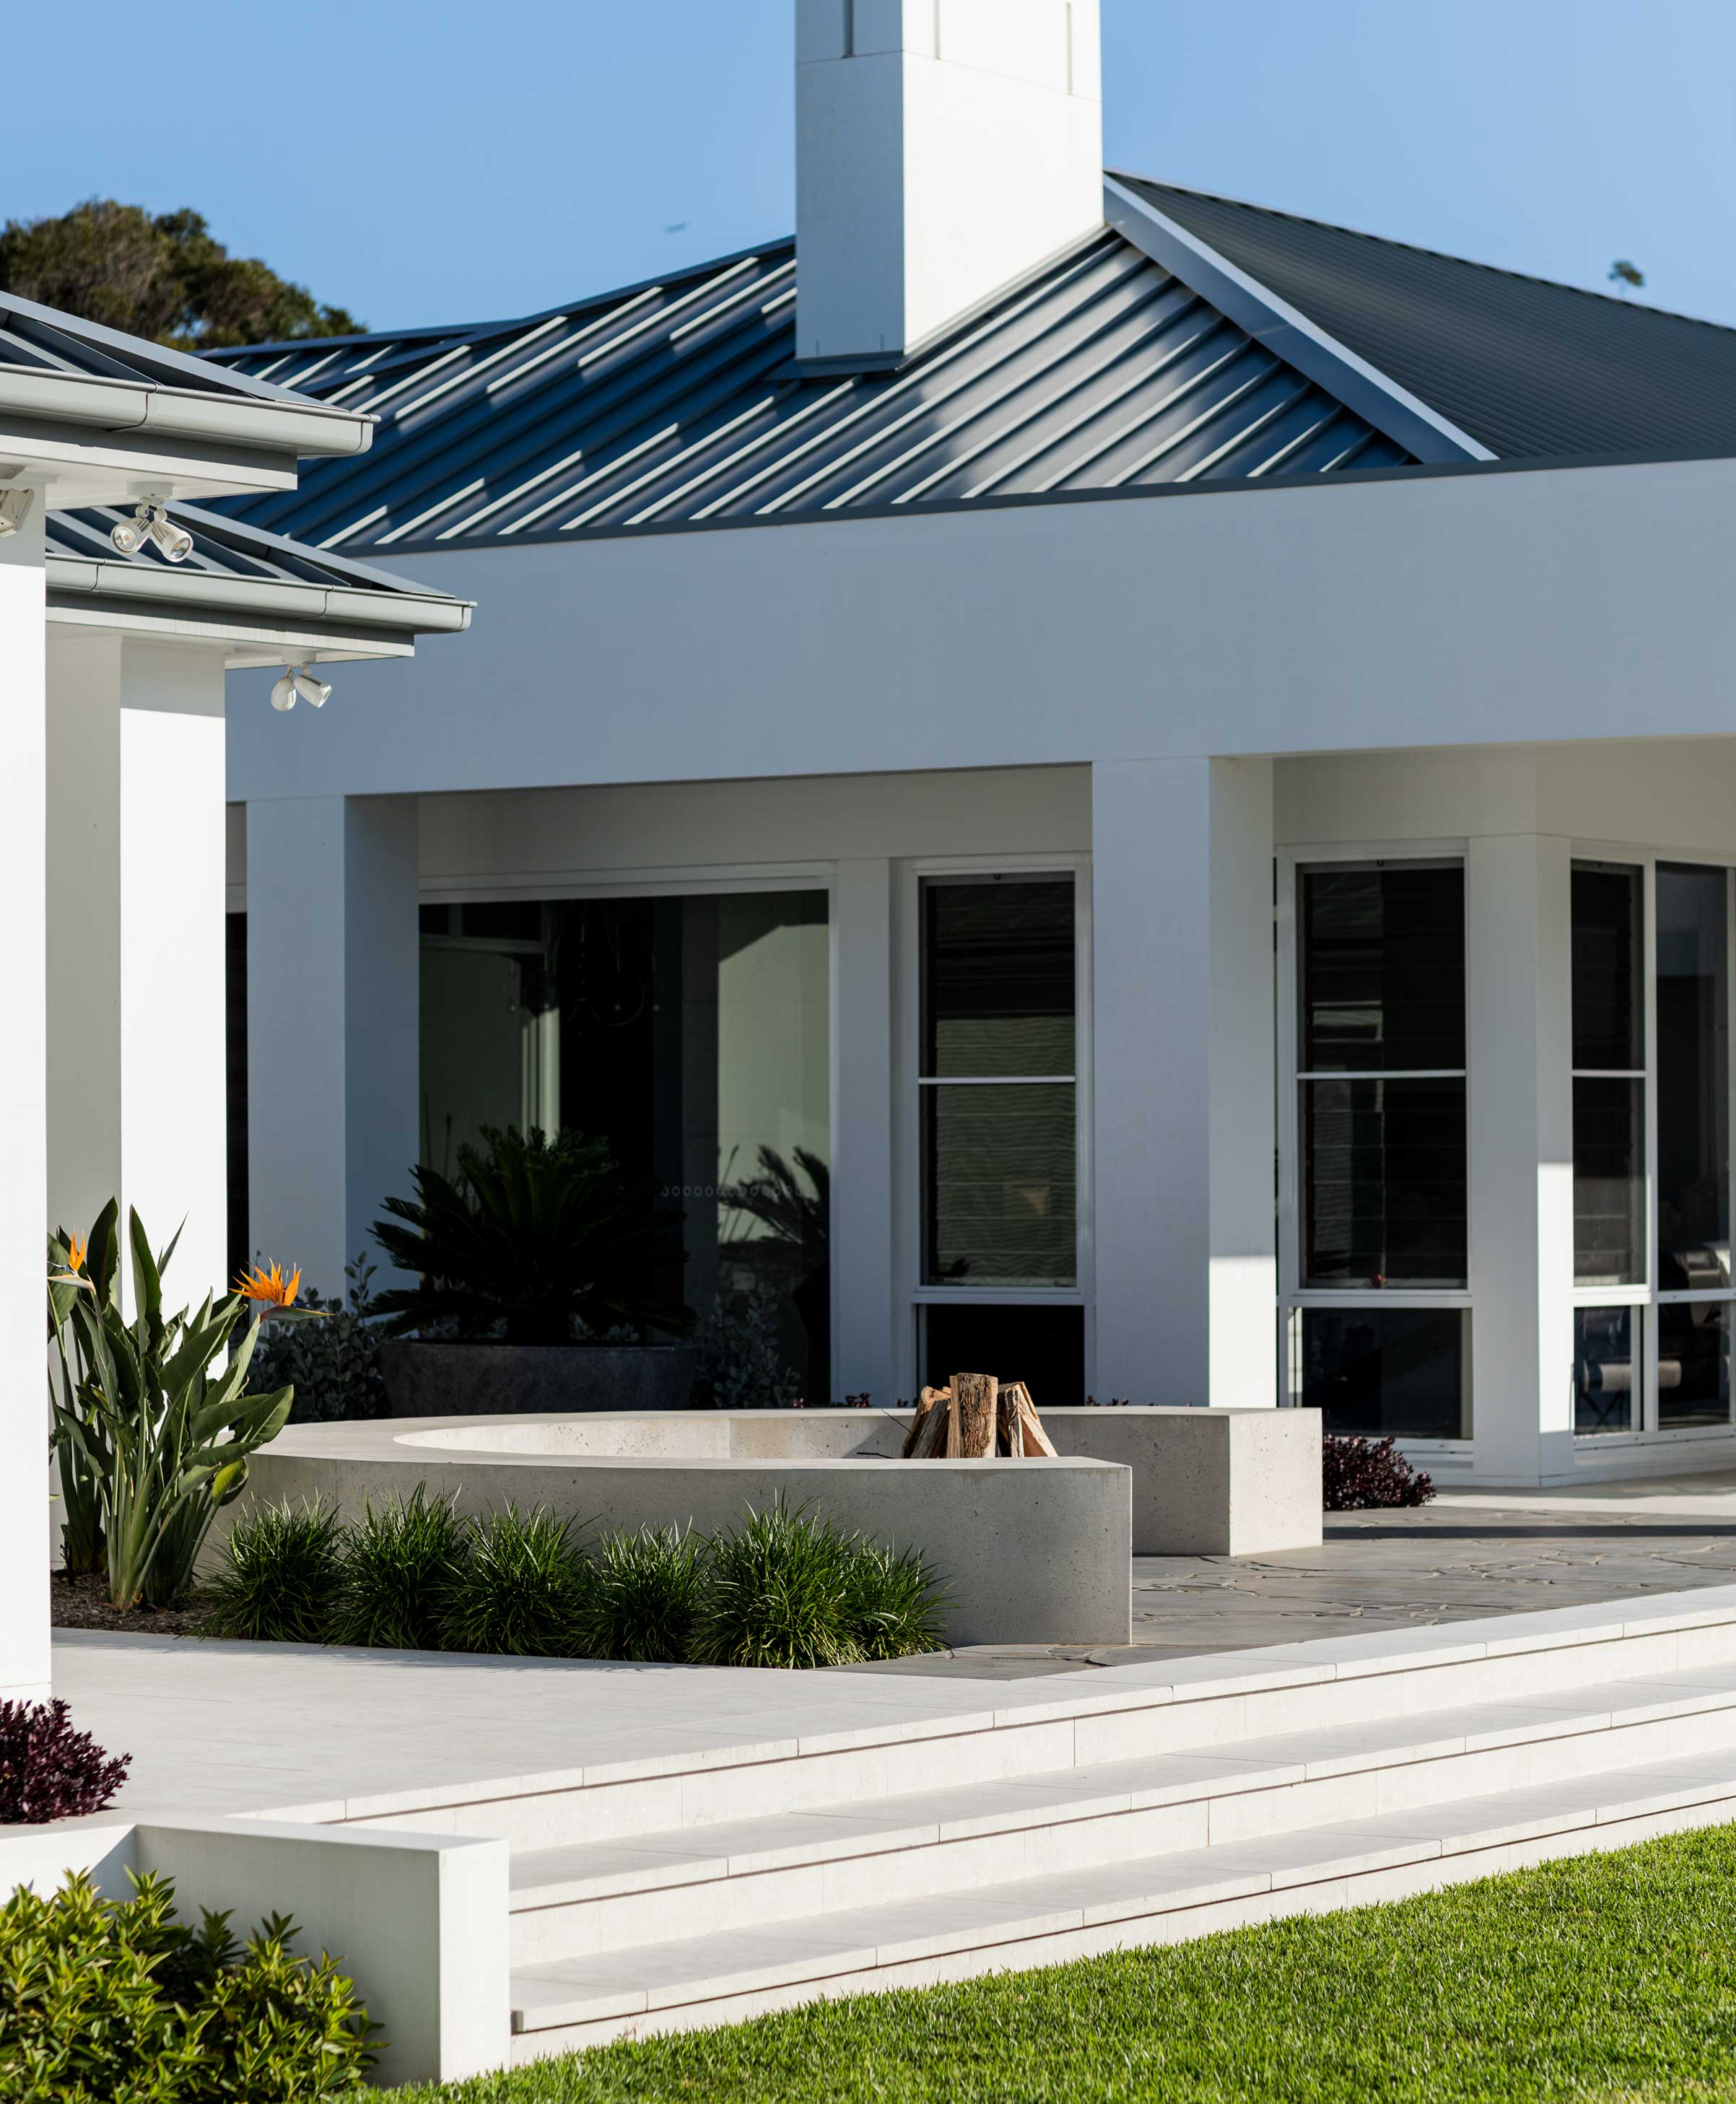 Products-Floor stone-pavers-and-tiles-outdoor-hero